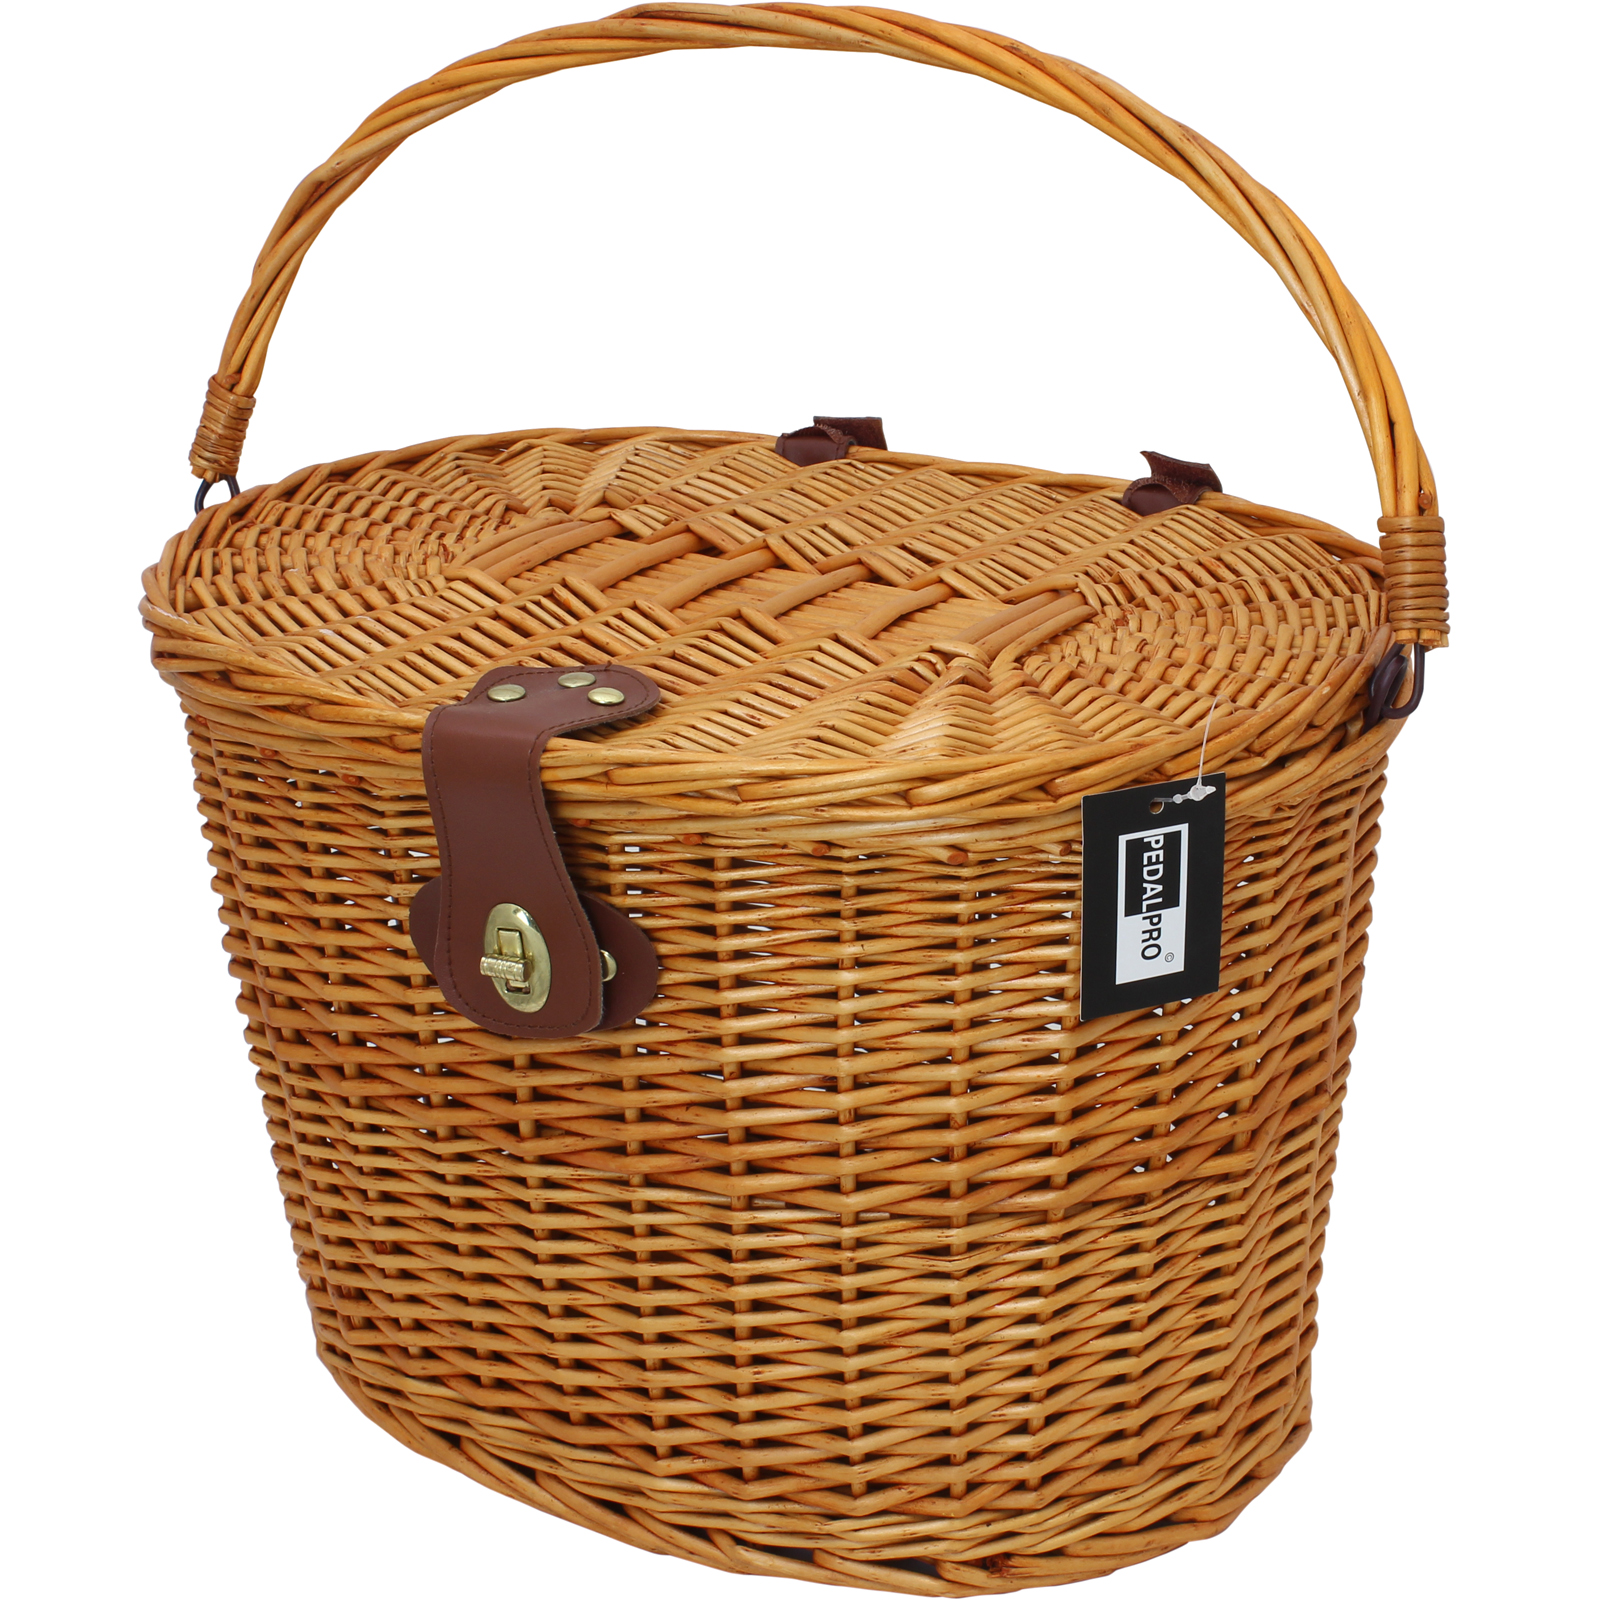 Wicker Bicycle Basket With Handle : Pedalpro classic wicker bicycle basket with lid handle